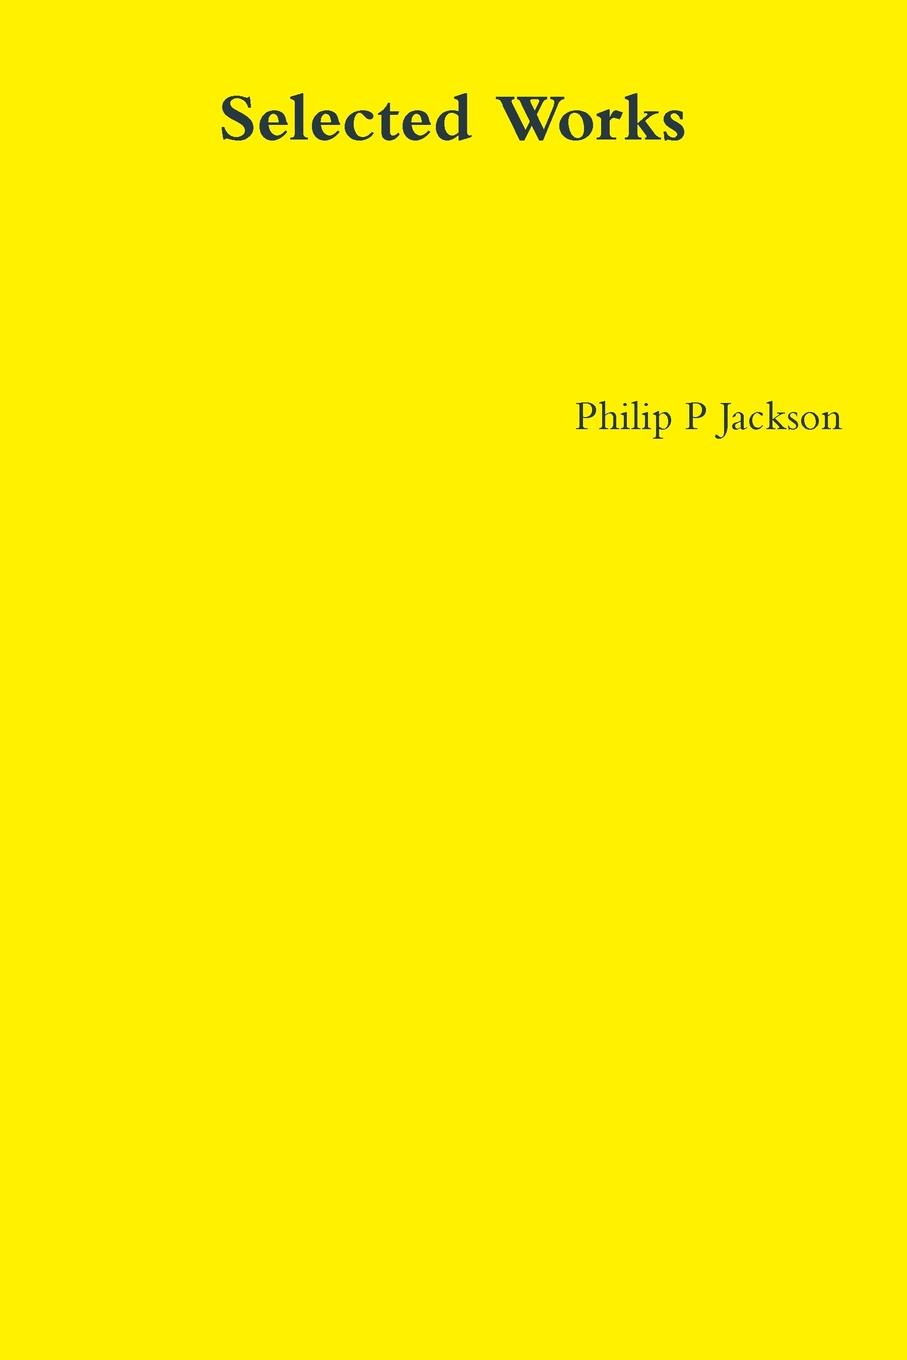 Philip Jackson Selected Works fayez gebali algorithms and parallel computing